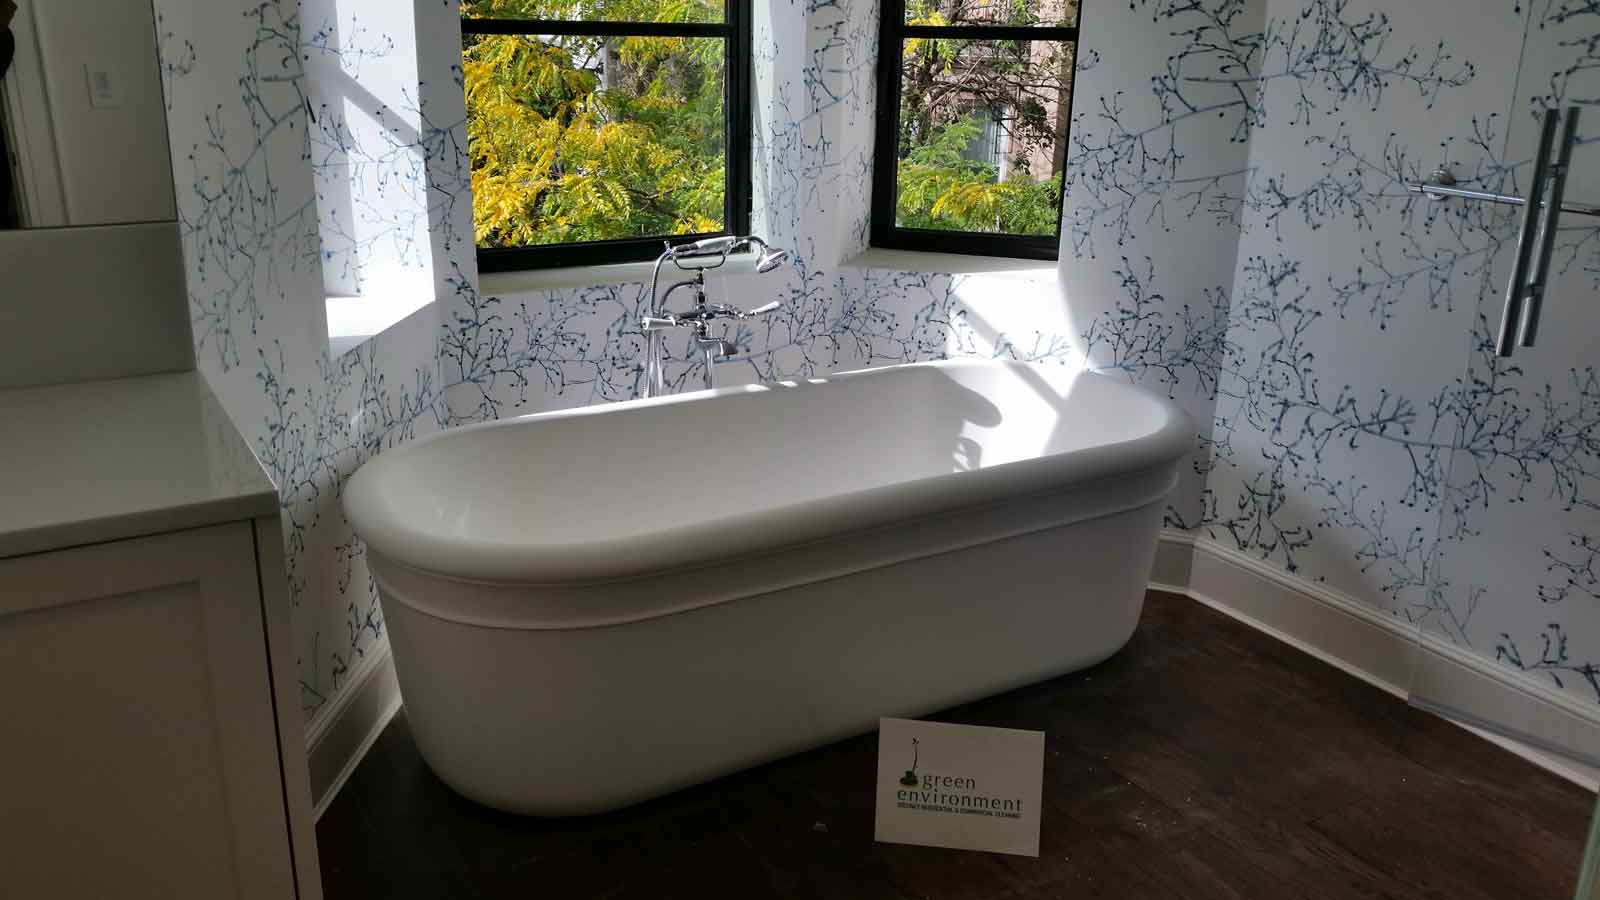 Tub surrounded with vine wallpaper and windows.